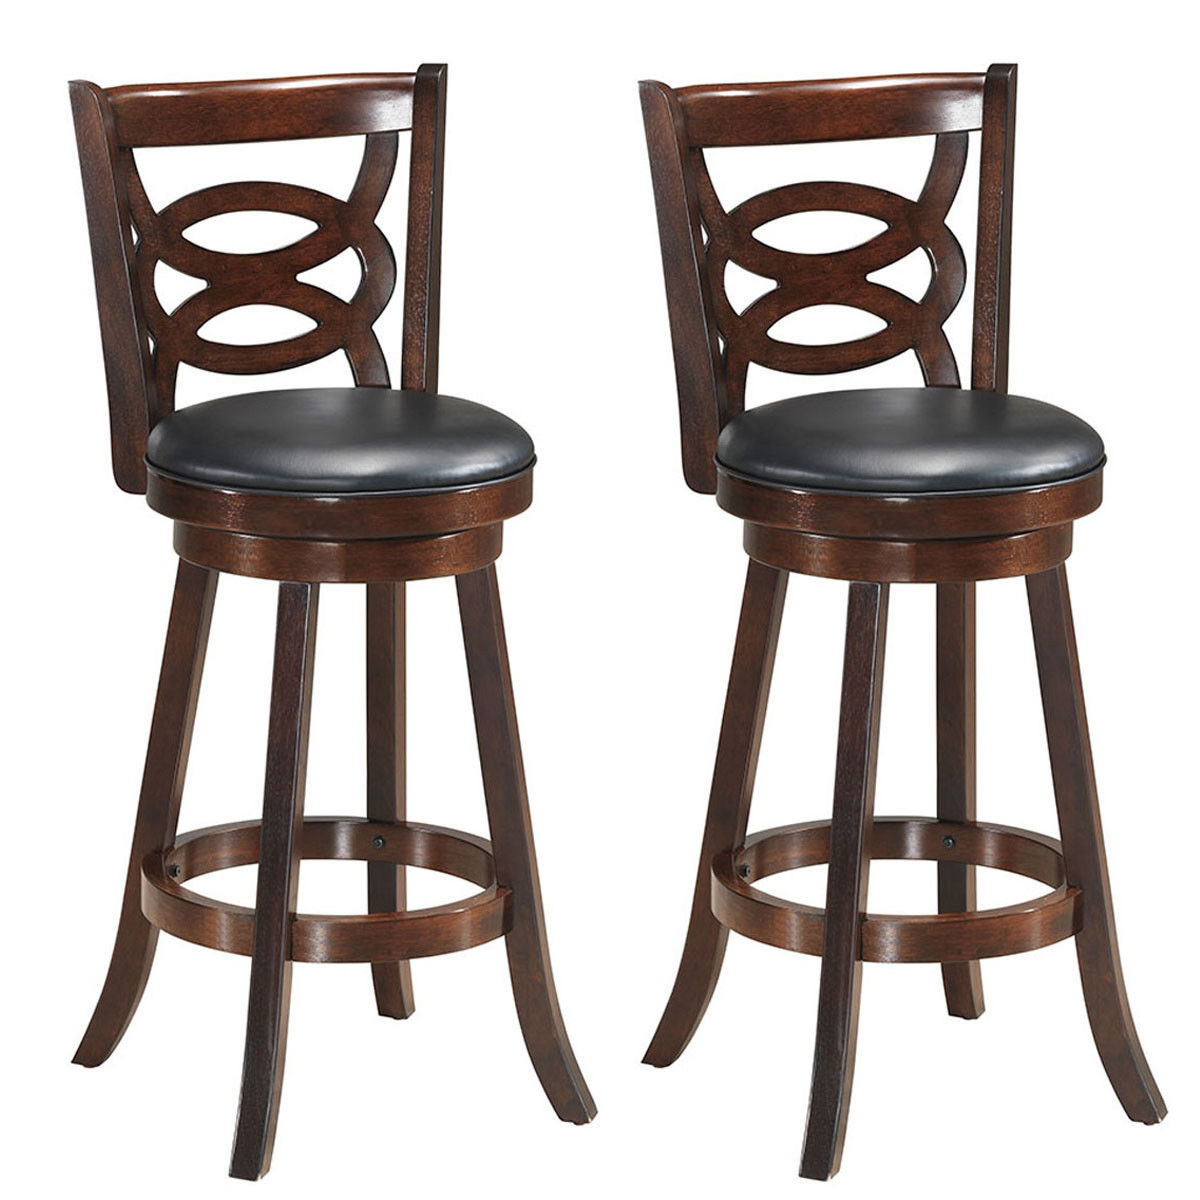 Costway Set Of 2 Bar Stools 29'' Height Wooden Swivel Backed Dining Chair Home Kitchen